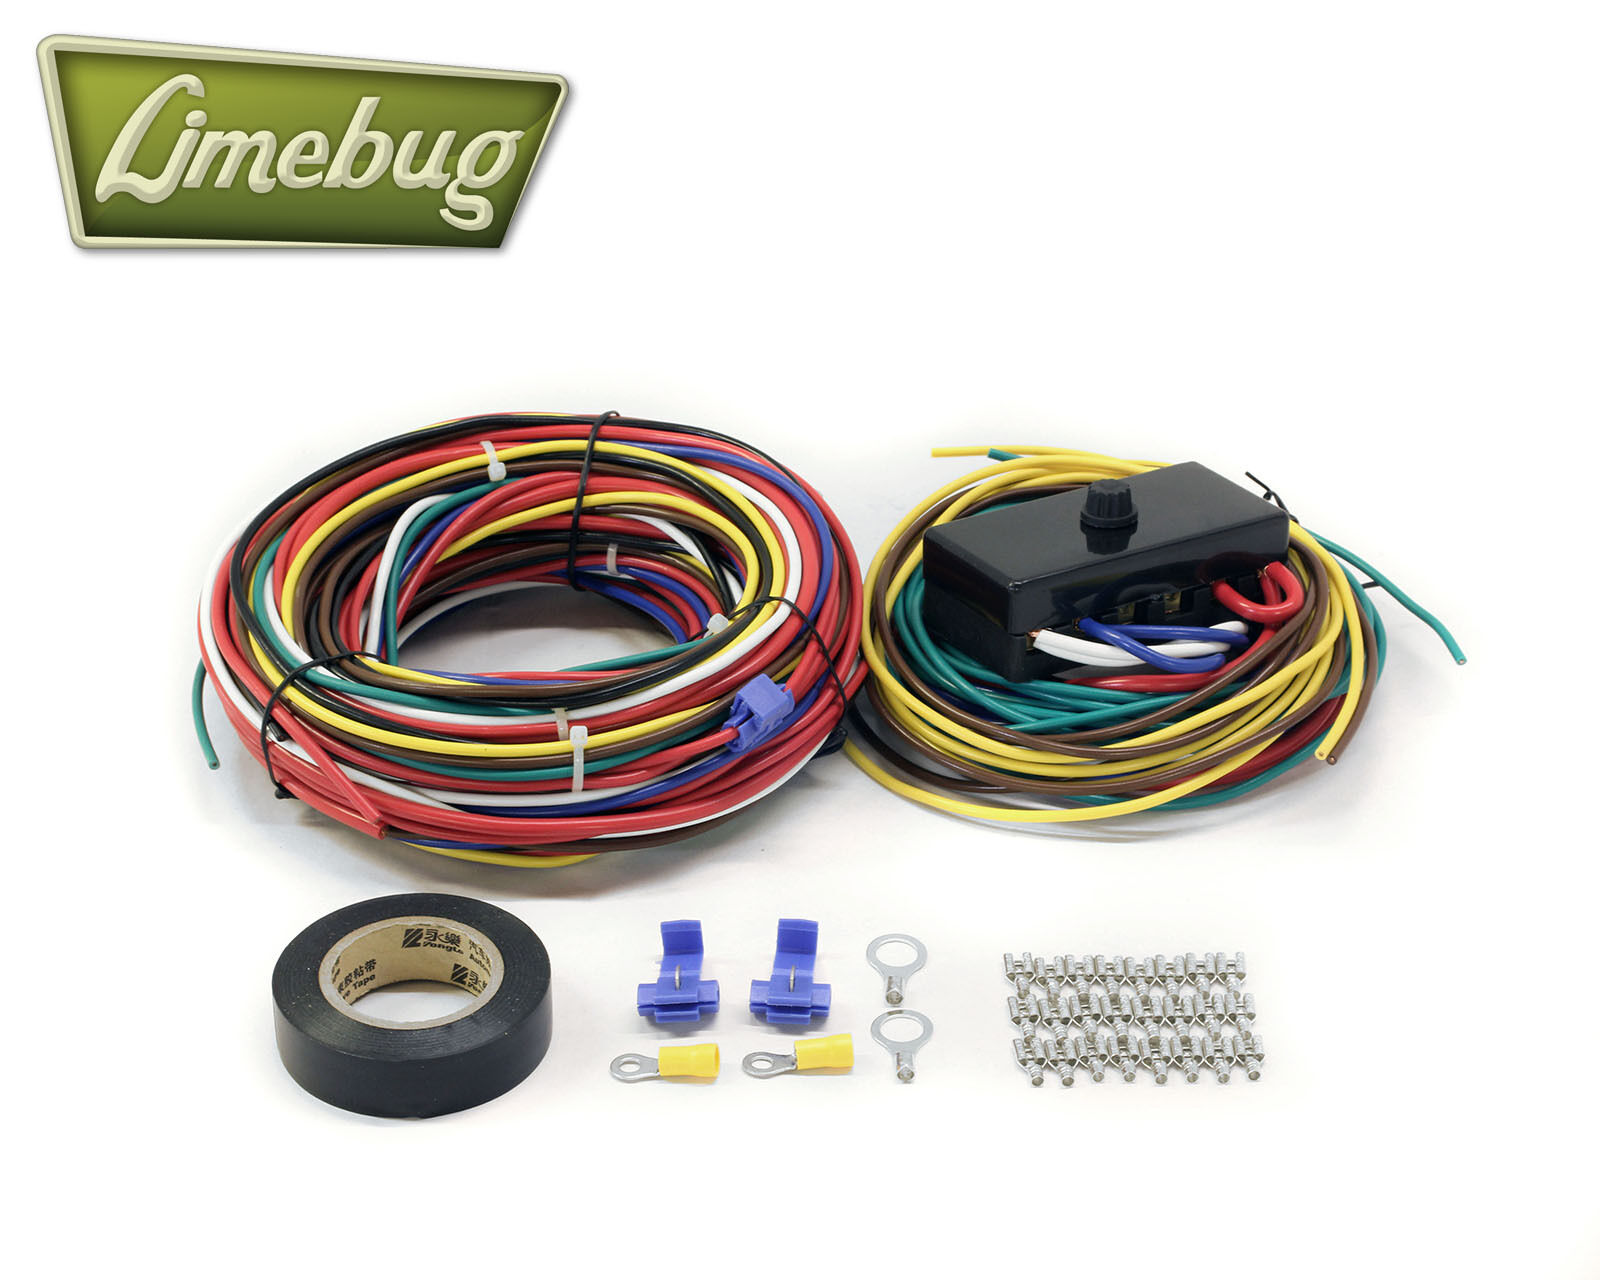 Vw Wiring Loom With Fuse Box T1 Beetle Buggy Bug Baja Electrical 2012 Harness Trailer Engine 1 Of 1free Shipping